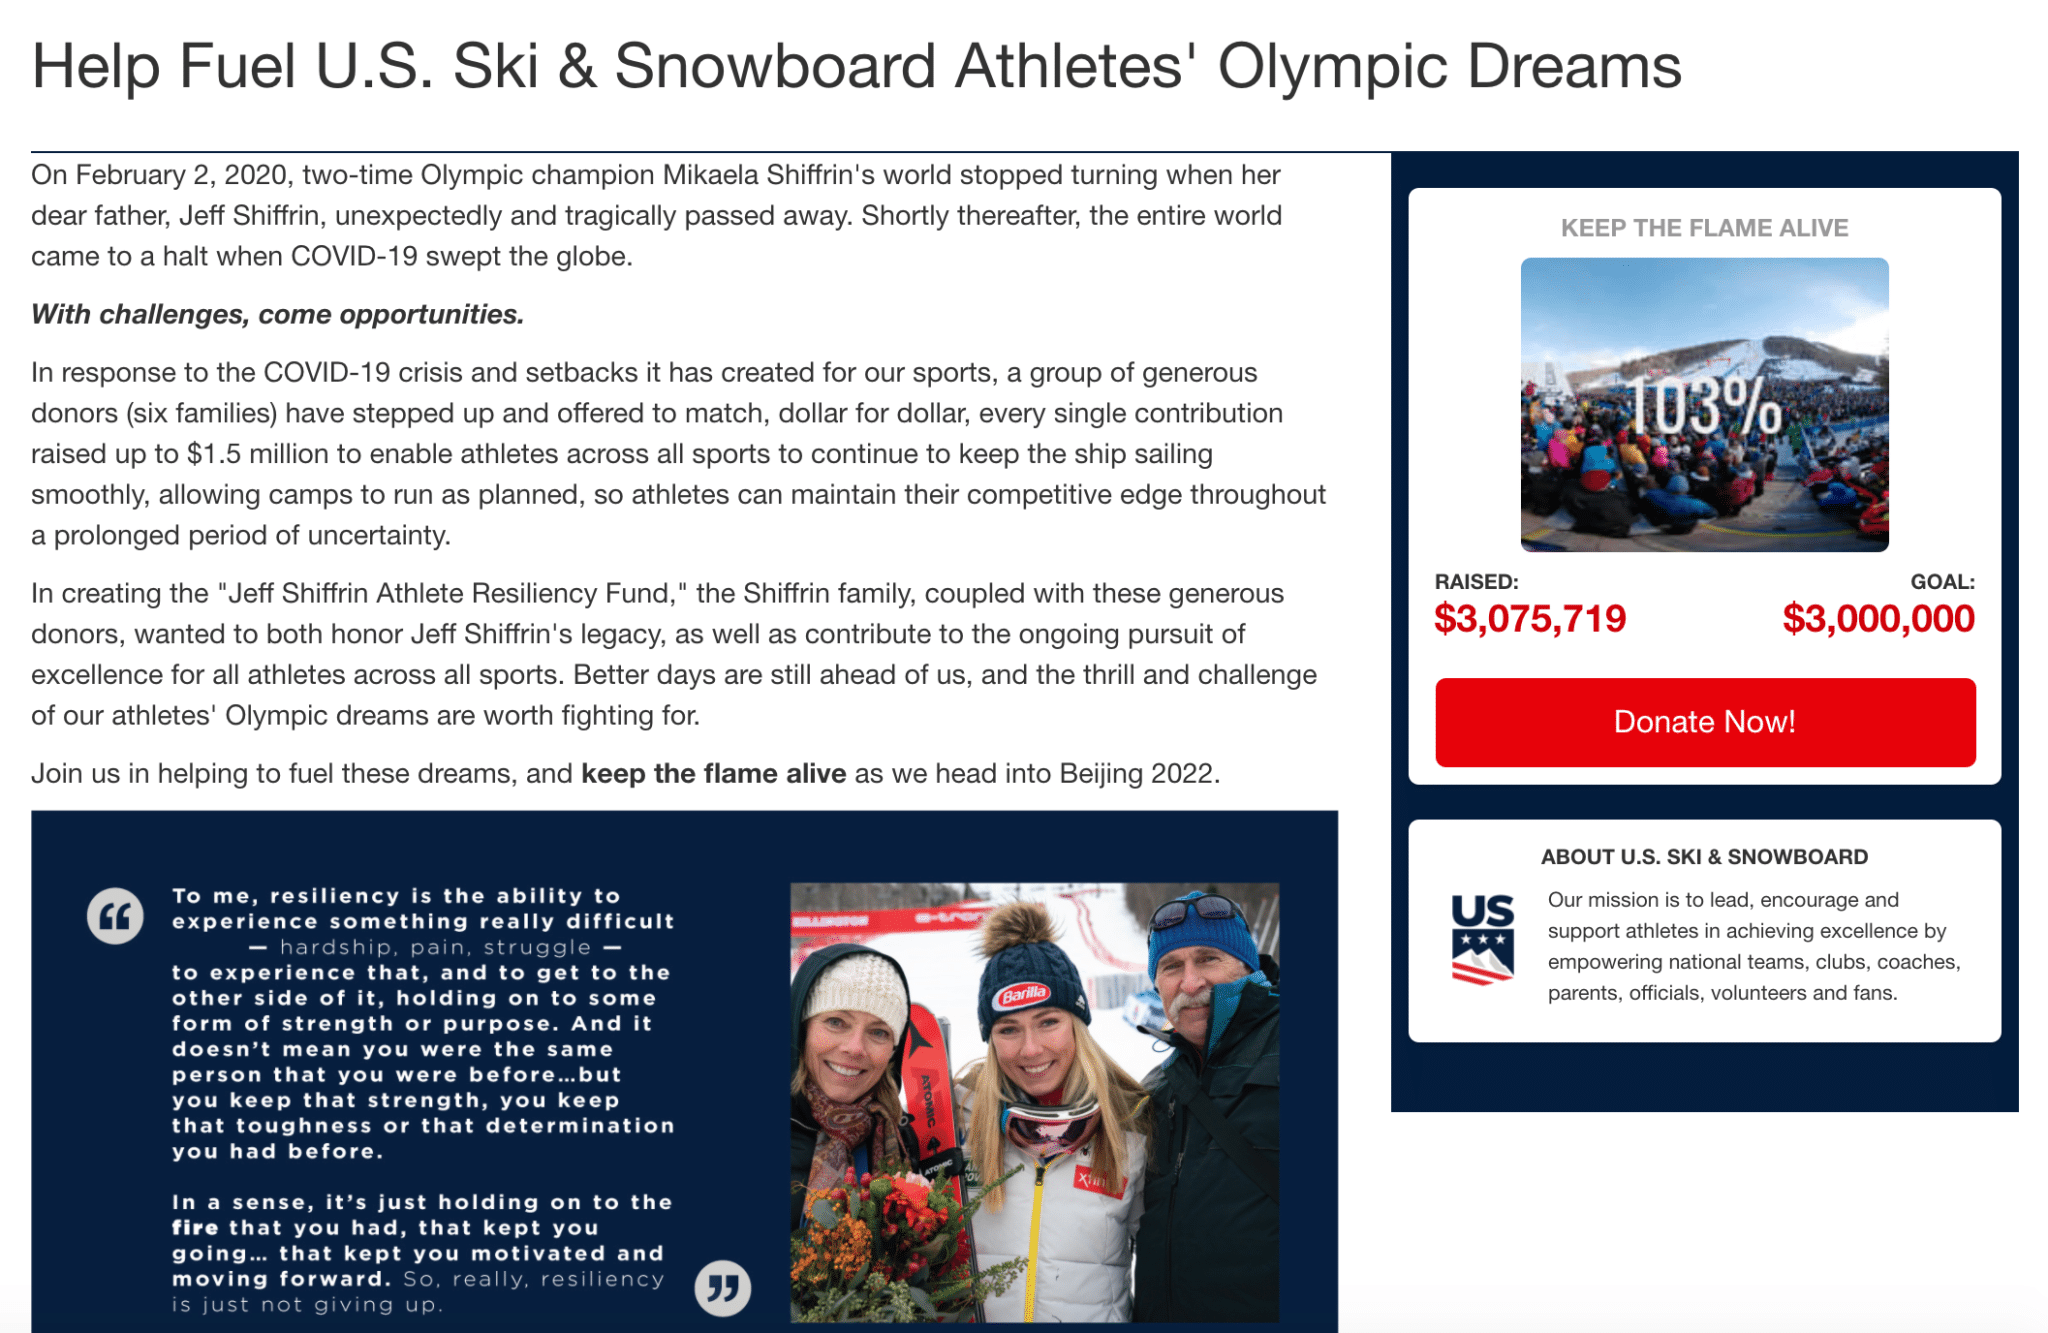 The U.S. Ski & Snowboard Foundation used online fundraising and peer-to-peer techniques to fund their Olympic efforts.